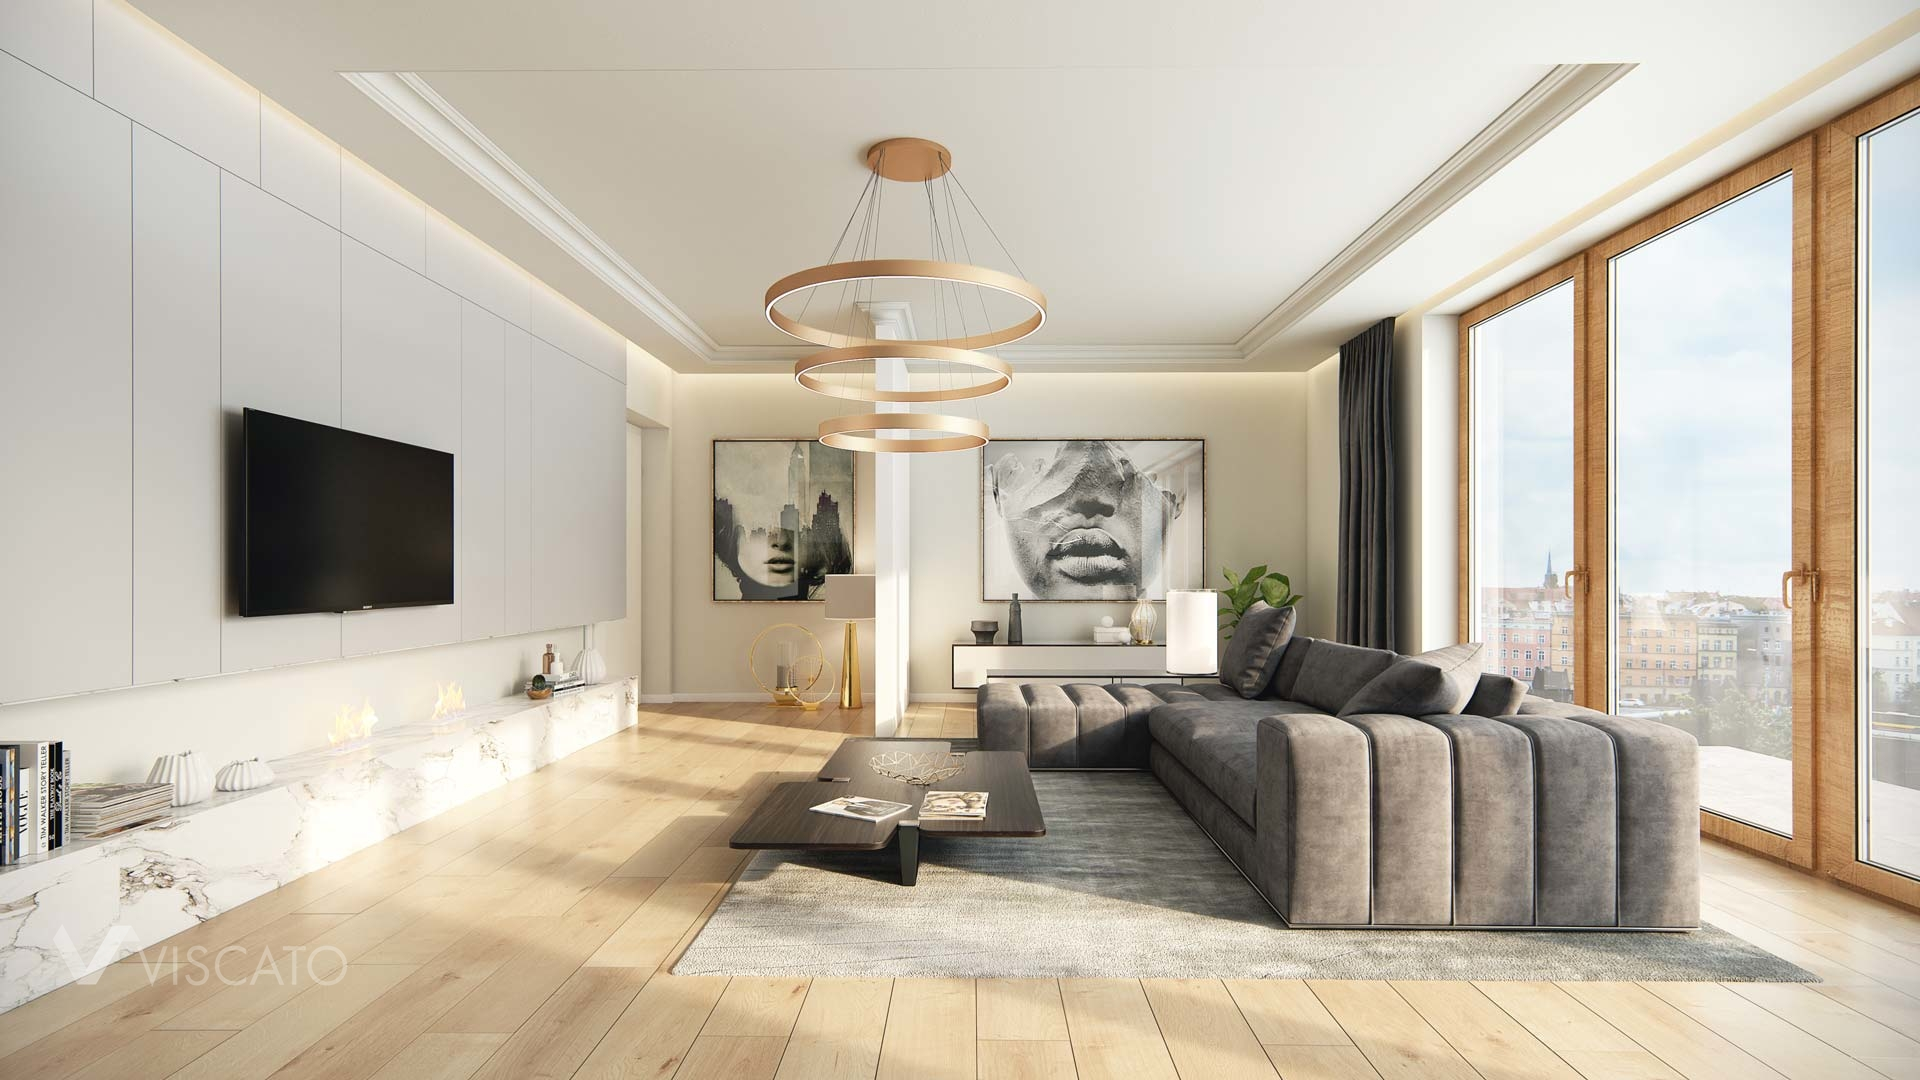 3D interior visualization of a luxurious living room, 3ds Max